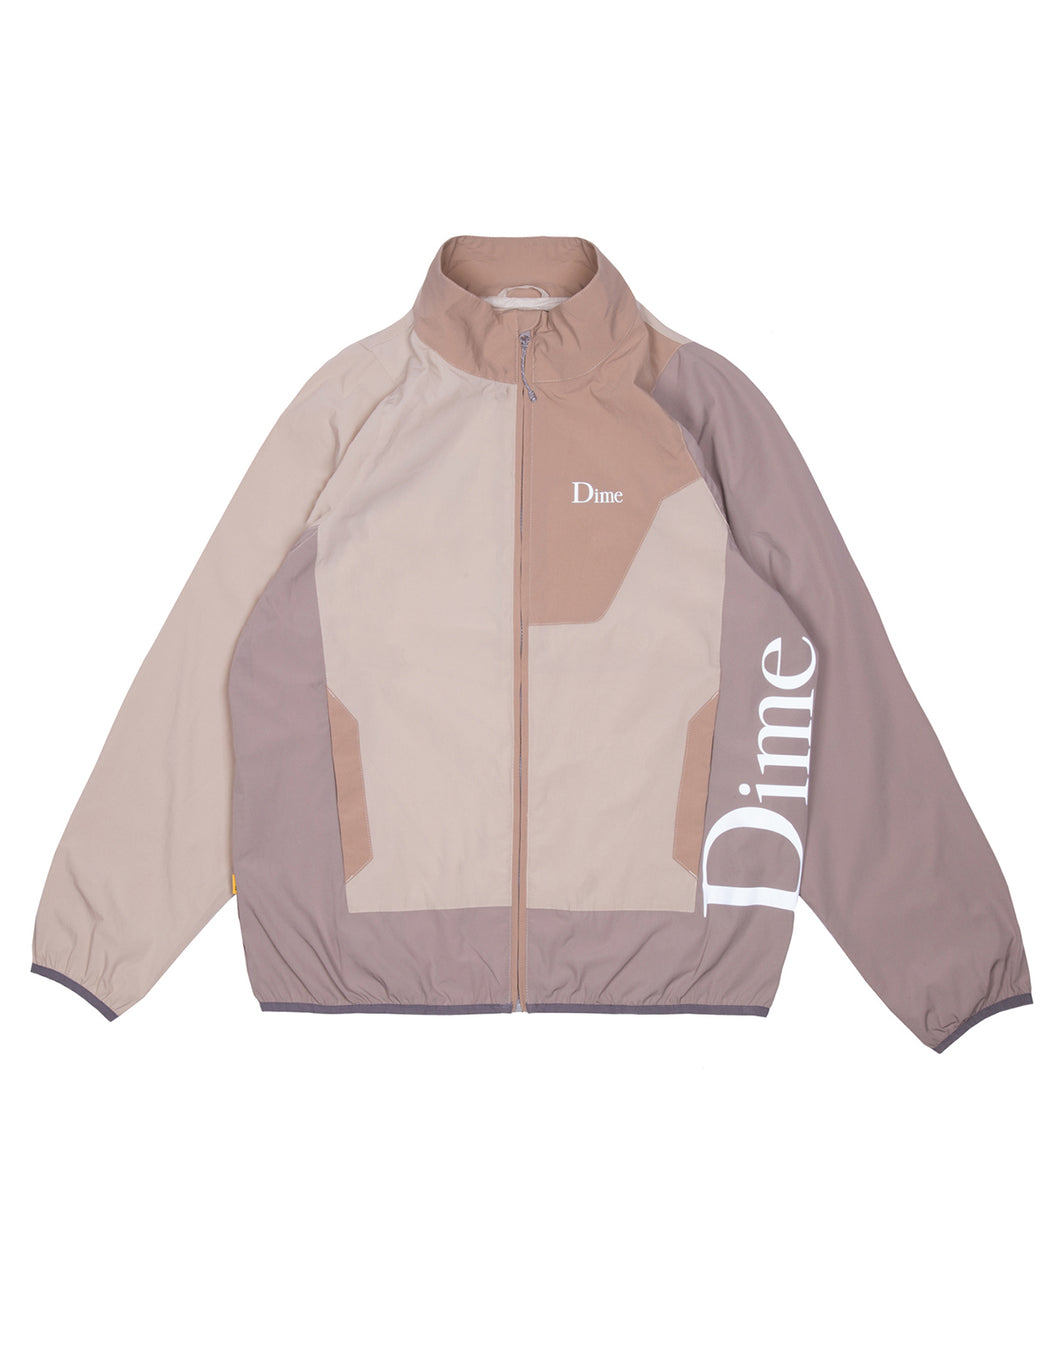 Dime Range Jacket Tan